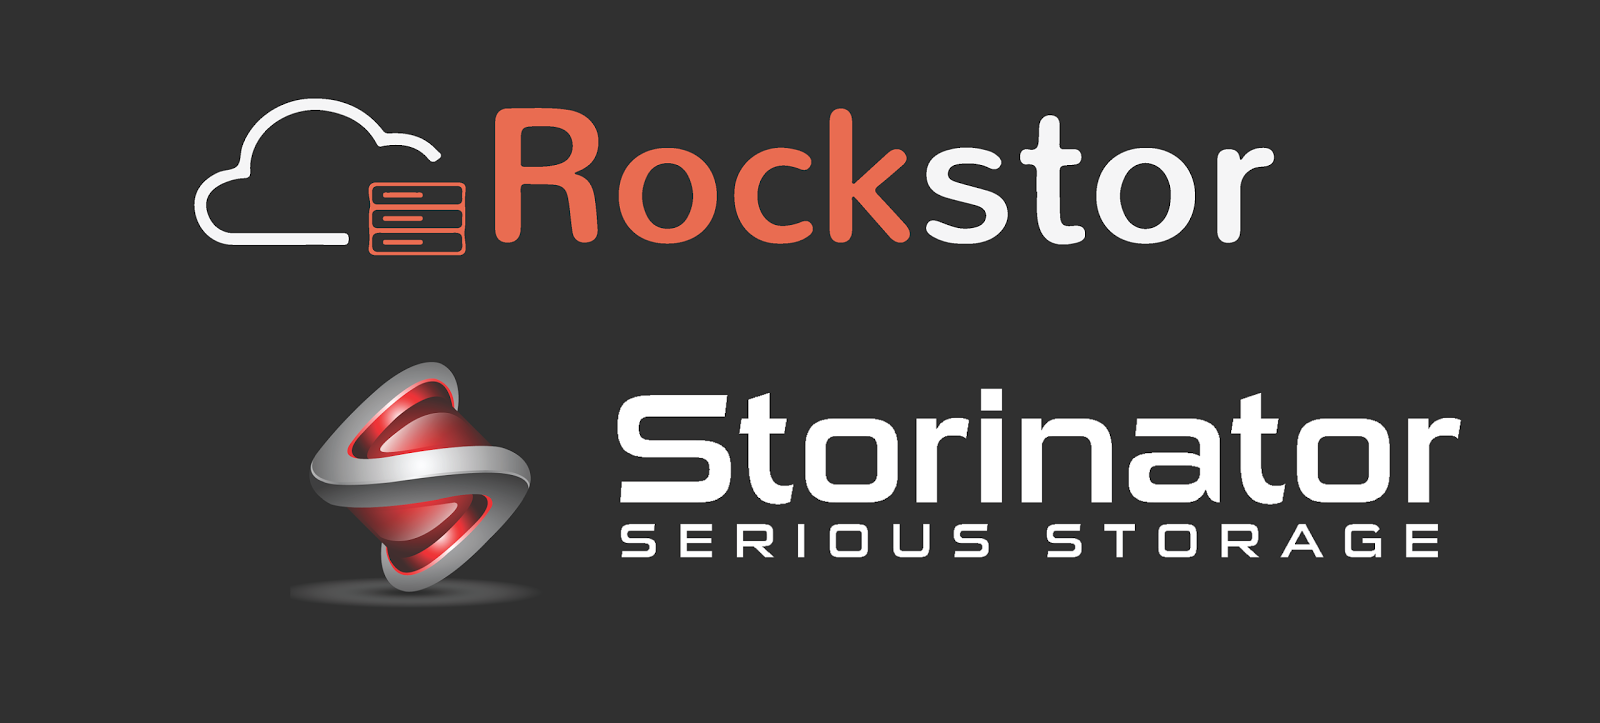 45 Drives: Why I Love Rockstor on our Storinators